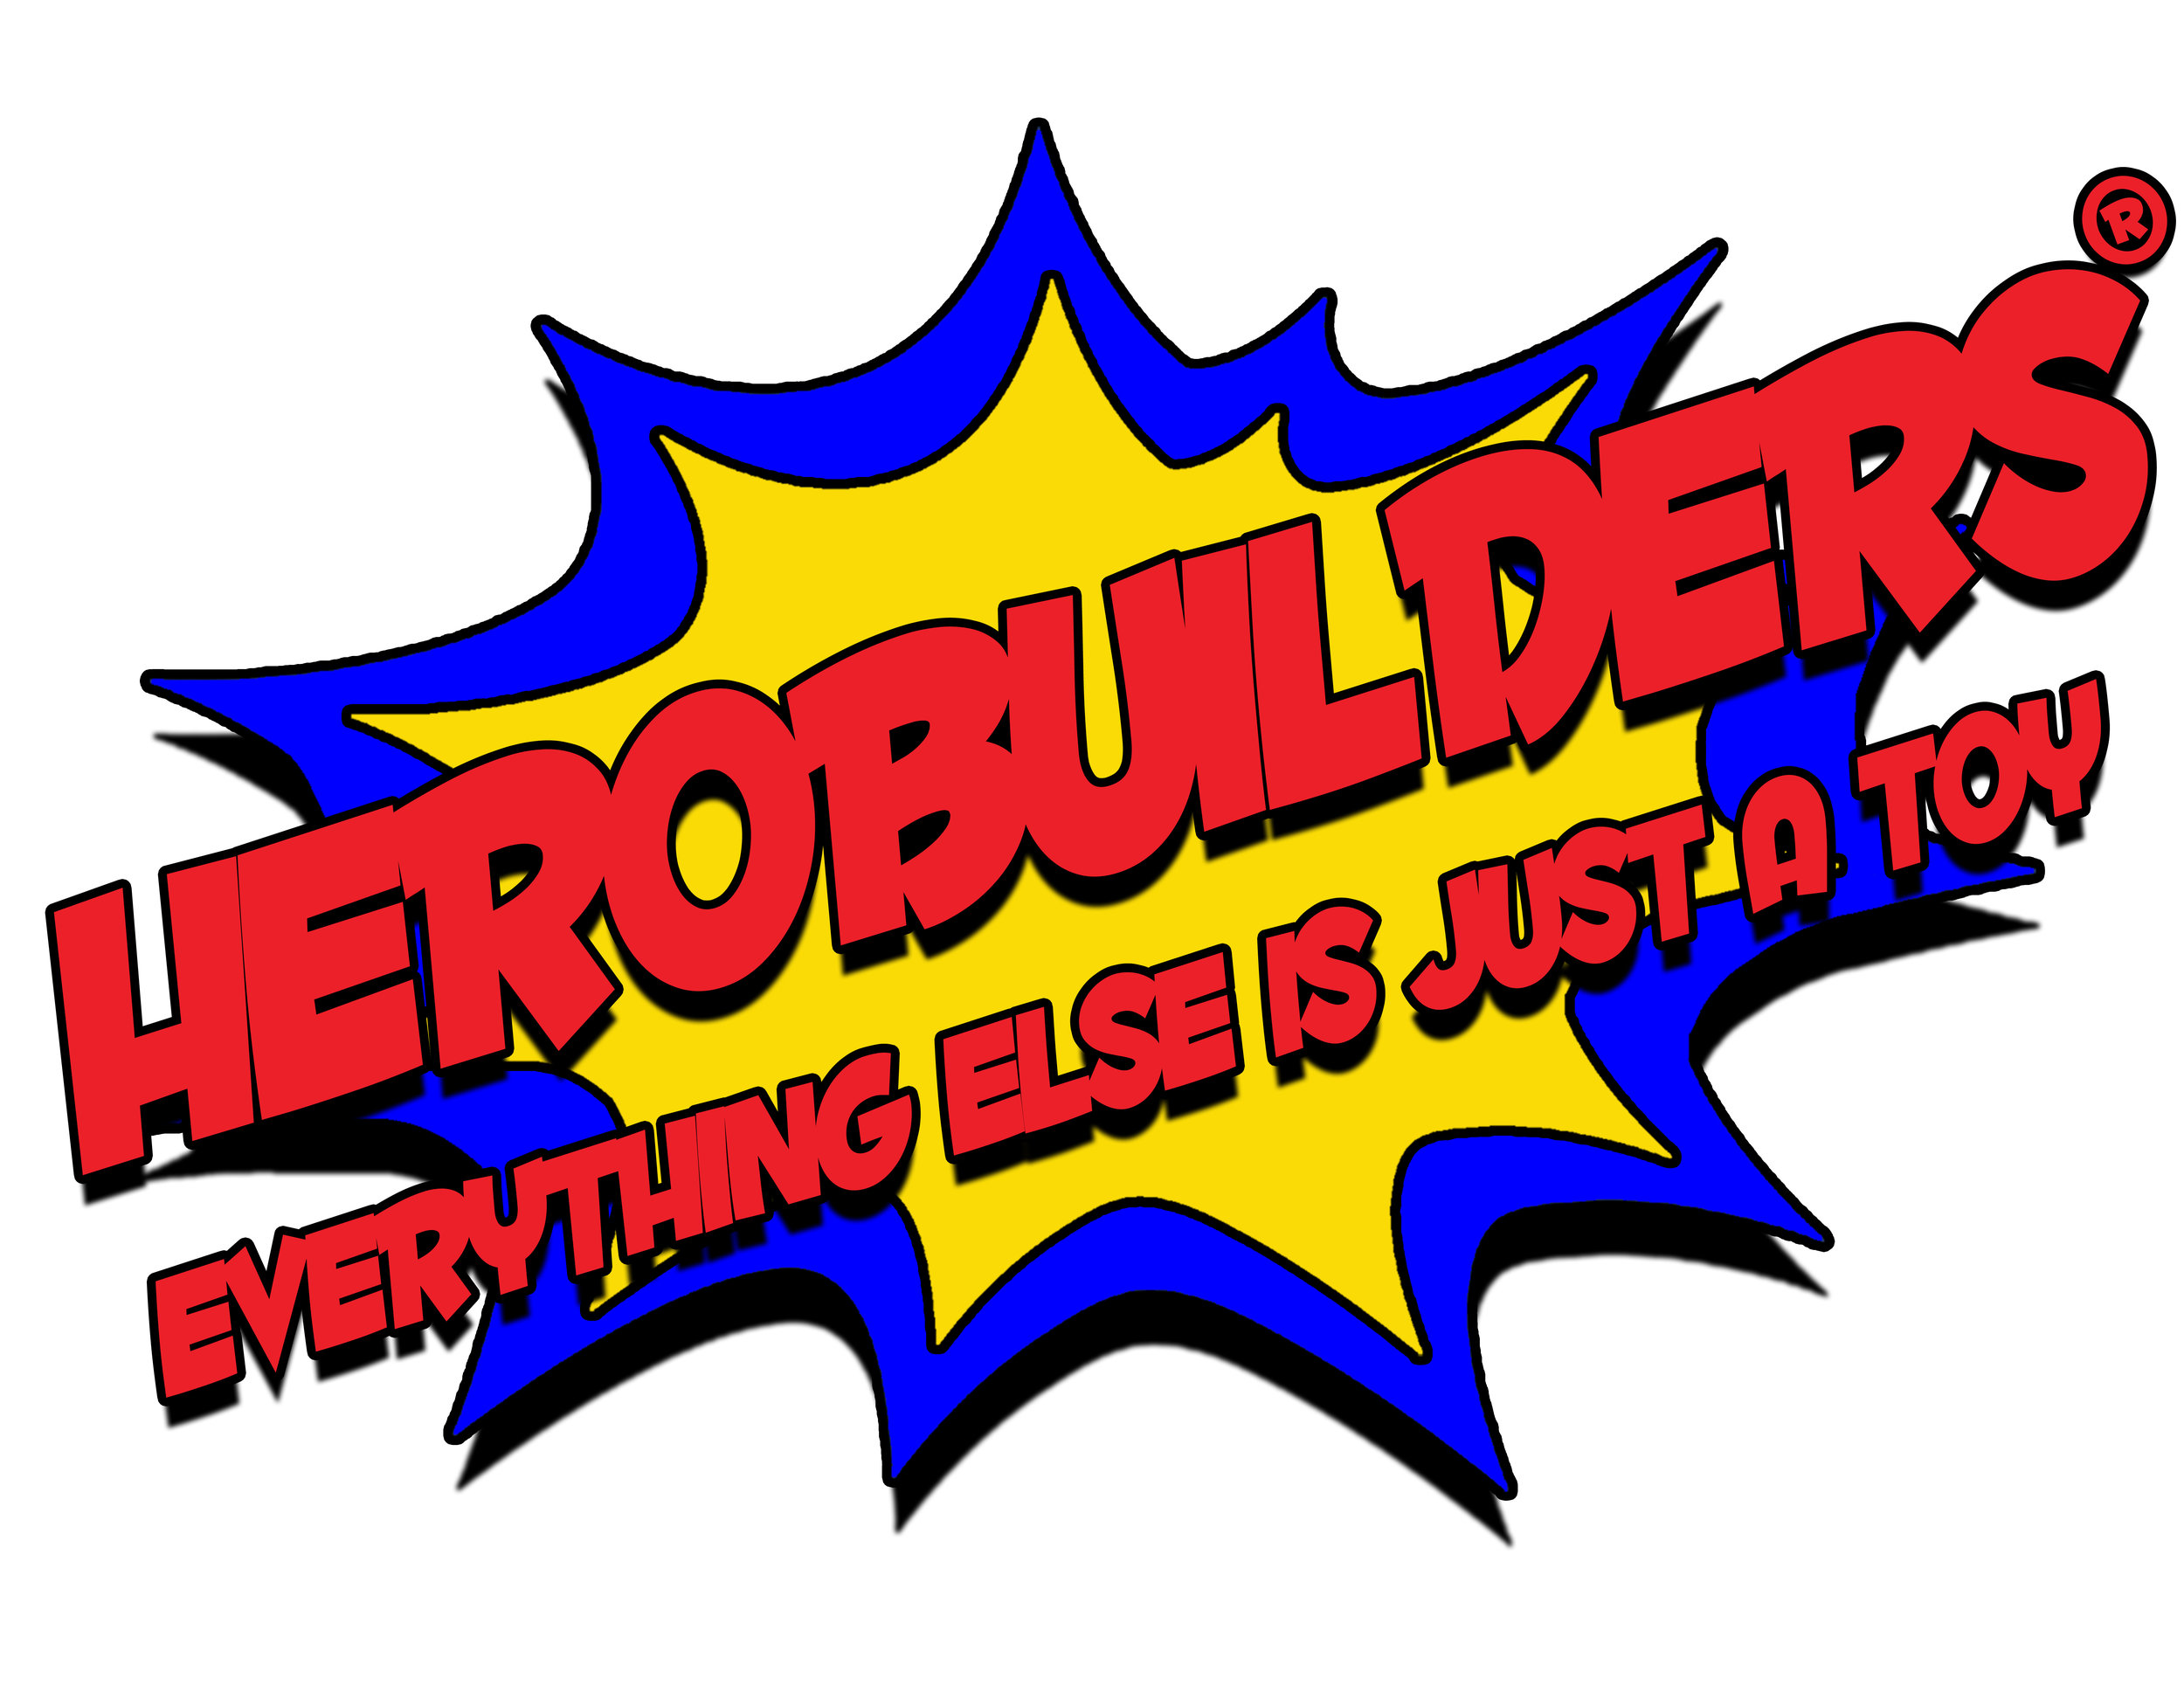 HeroBuilders - HeroBuilders® is a product based company specializing in Custom Action Figures and Political Action Figures Made in the USA. The name HeroBuilders is also the Brand and is descriptive of the business but can be a good brand for other businesses. The website is HTML 5, mobile first, AMP enabled with content management system, integrated separate digital shopping.